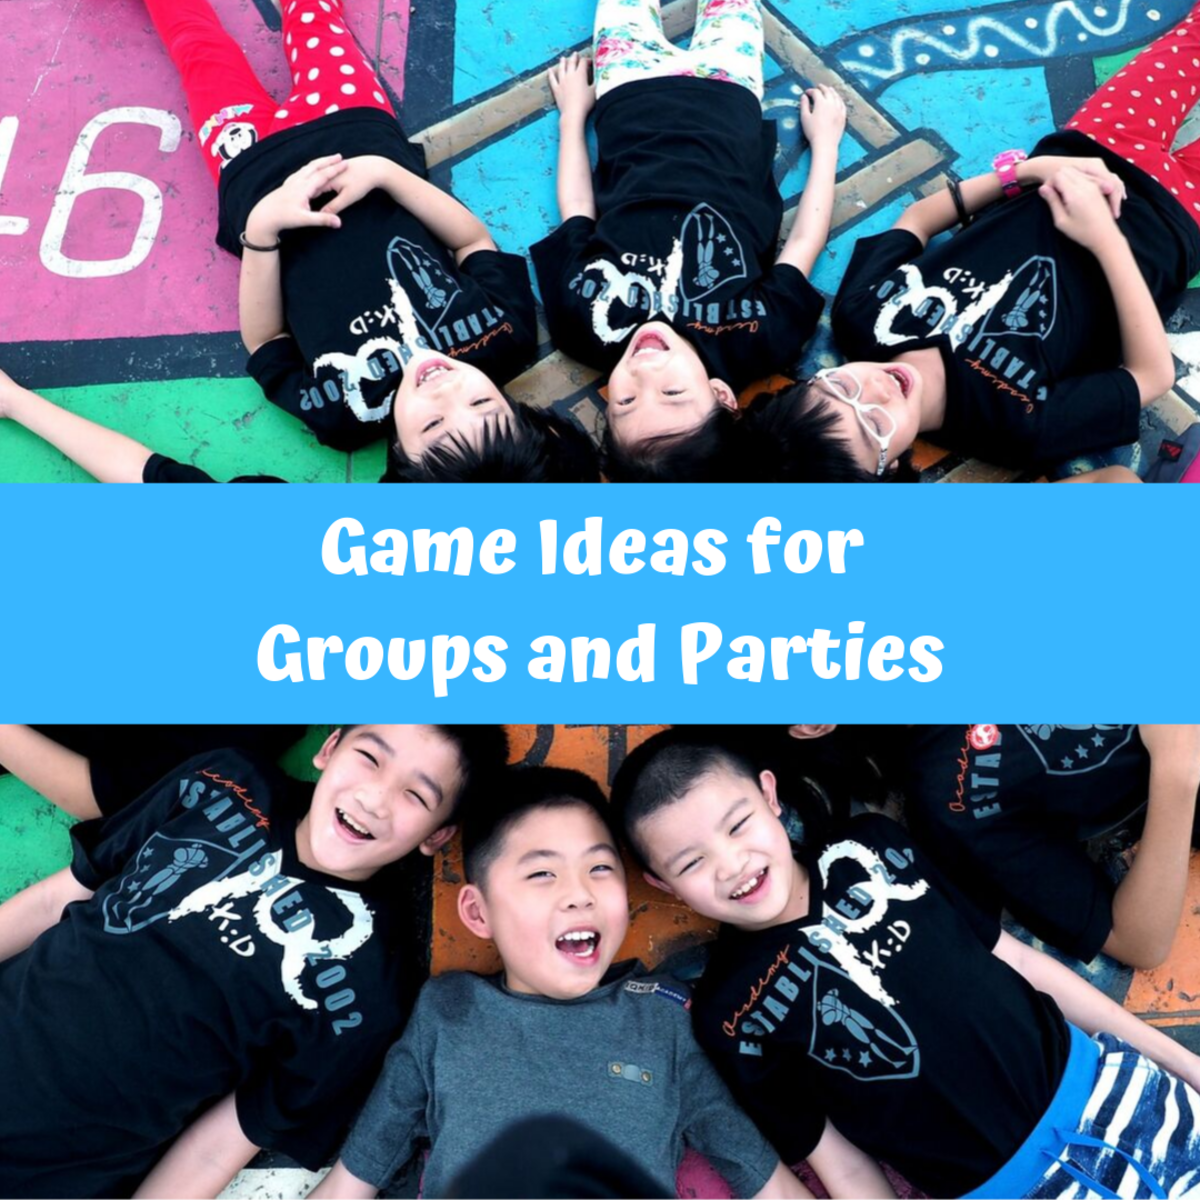 Find some fun activities for large (or small) groups!